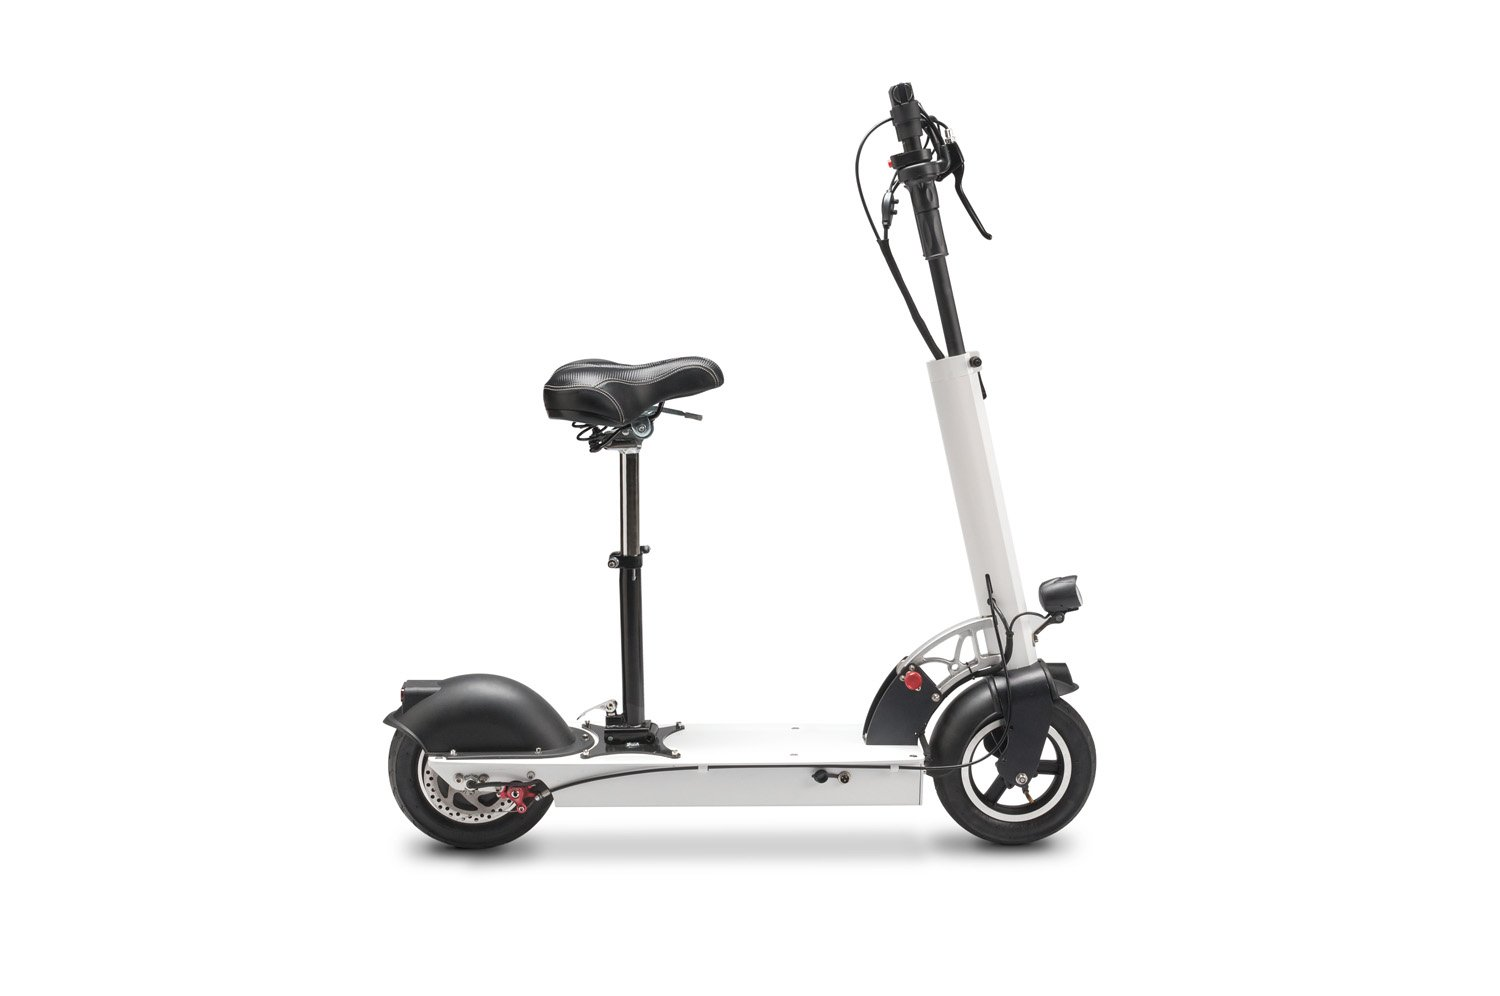 Zappy 3 Electric Scooter Part